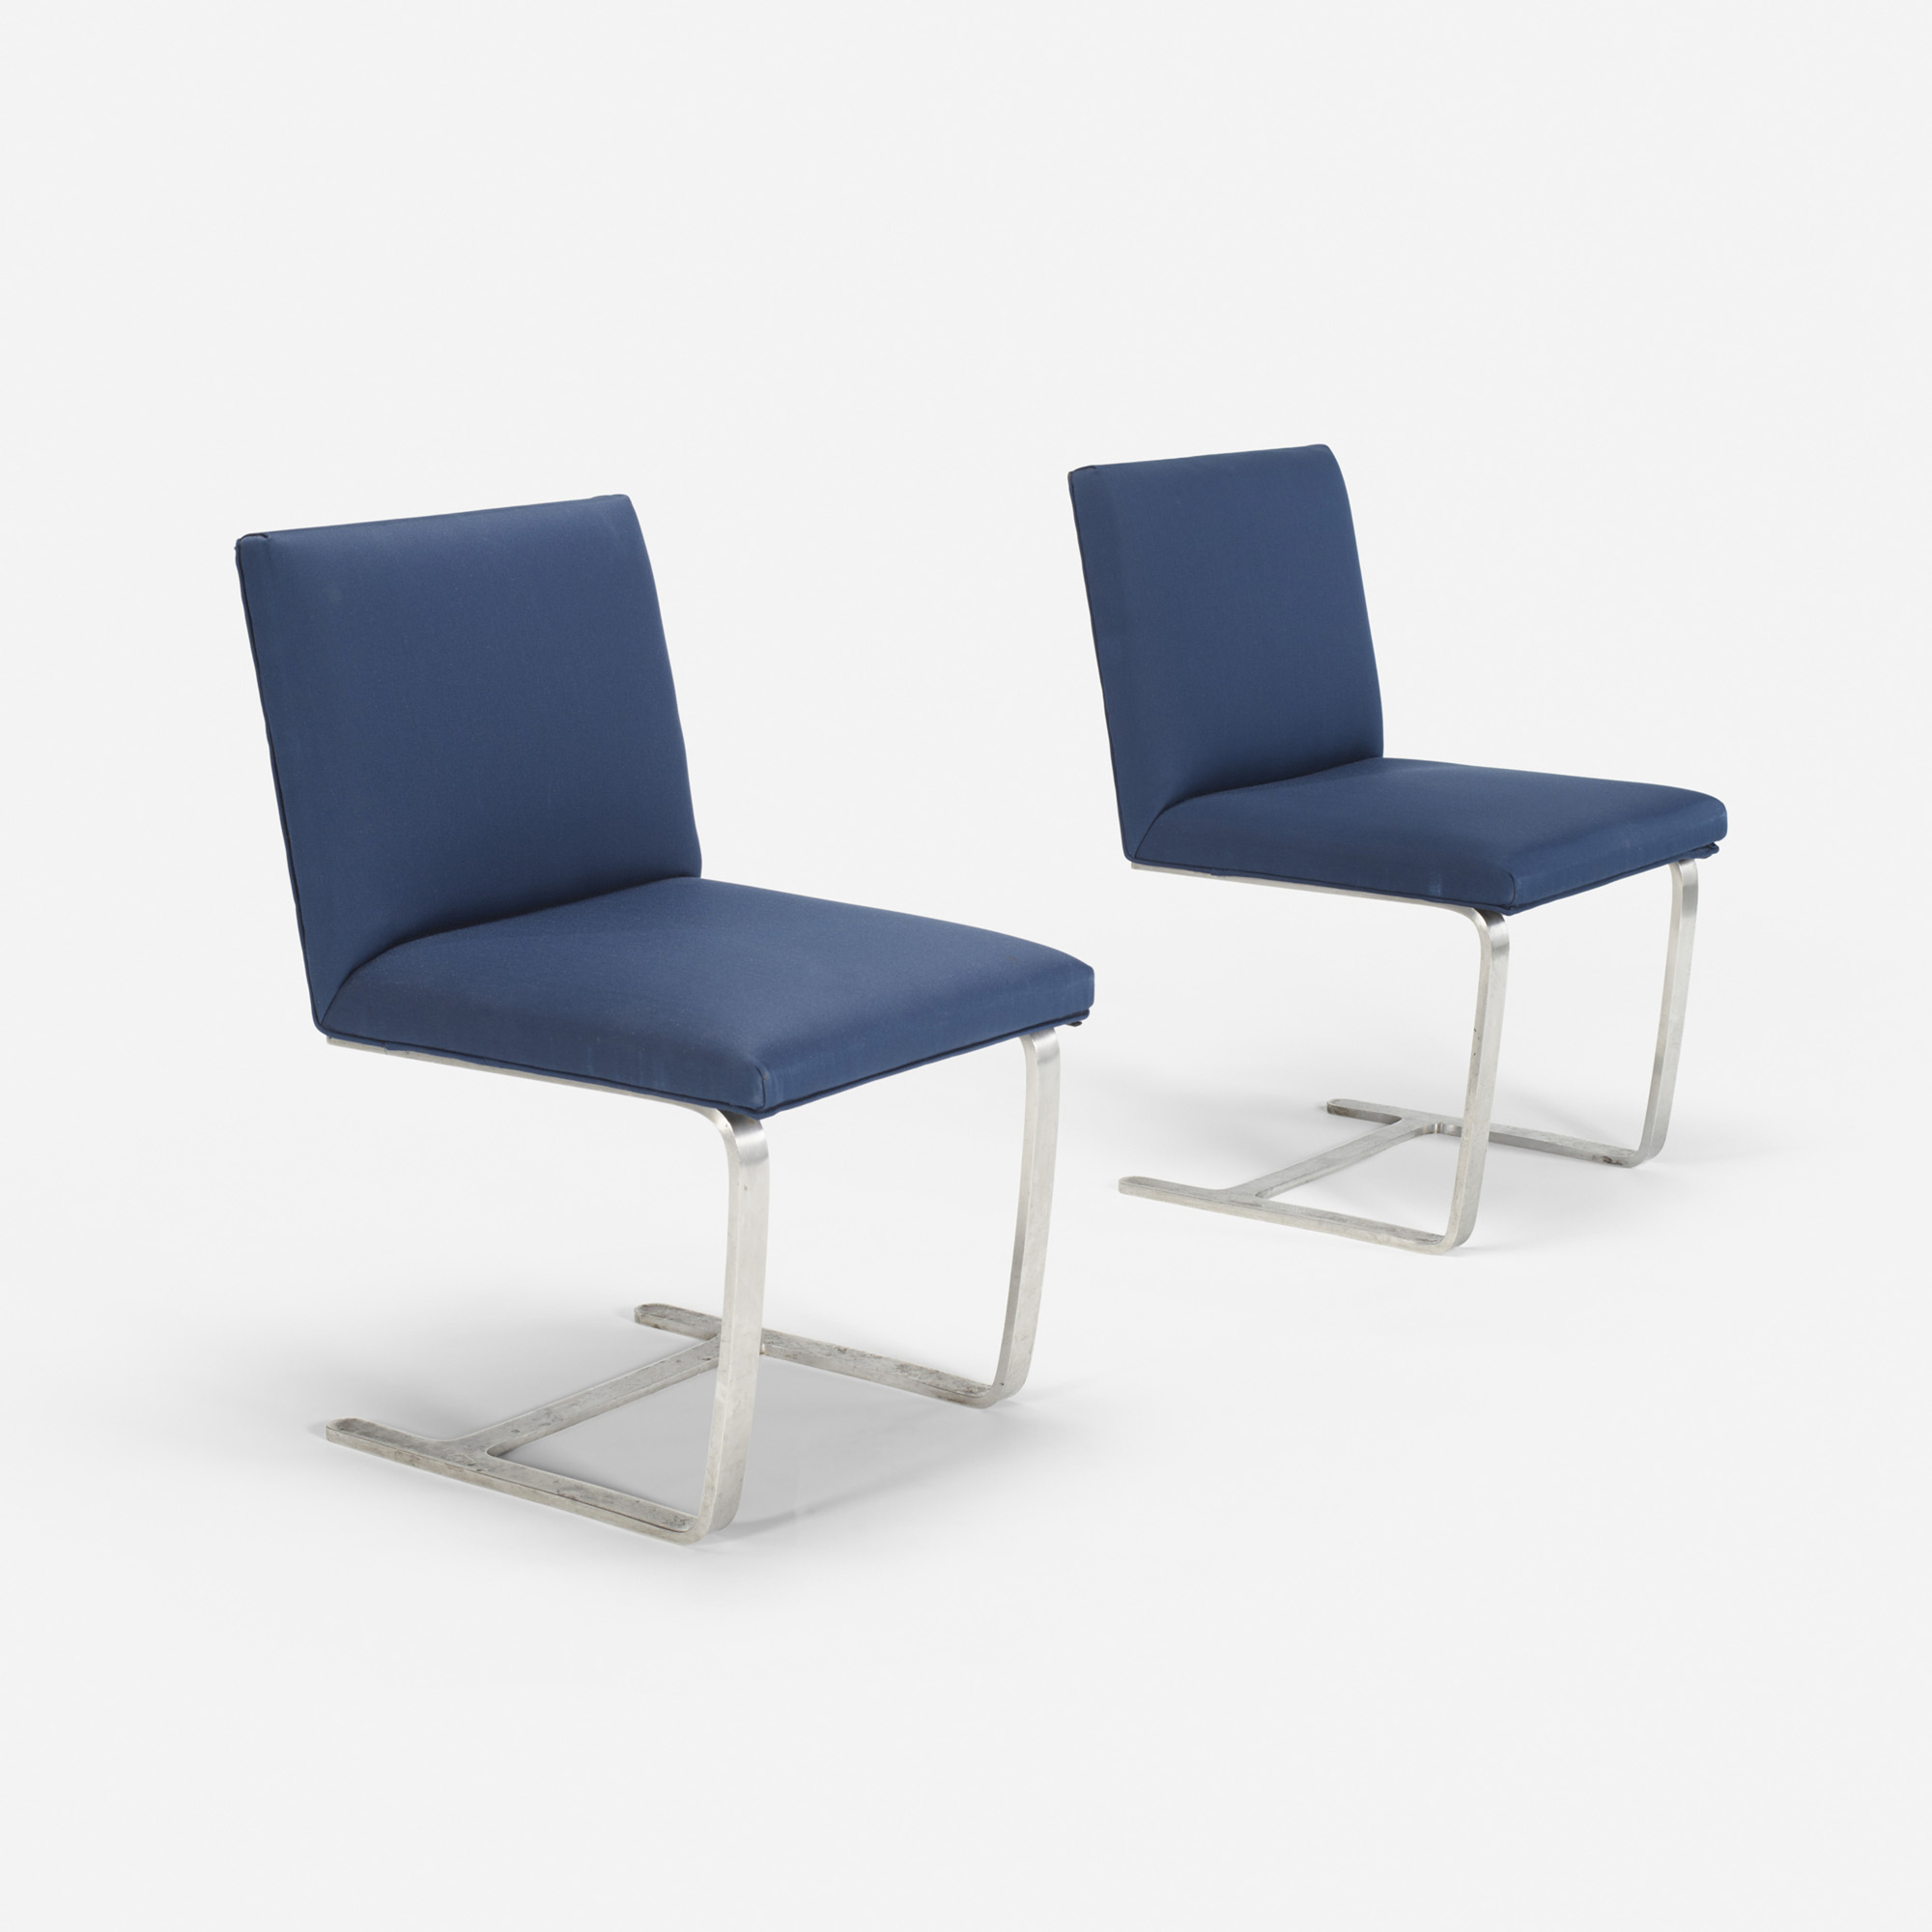 216: Ludwig Mies van der Rohe / Custom Brno side chairs from The Four Seasons, pair (1 of 1)